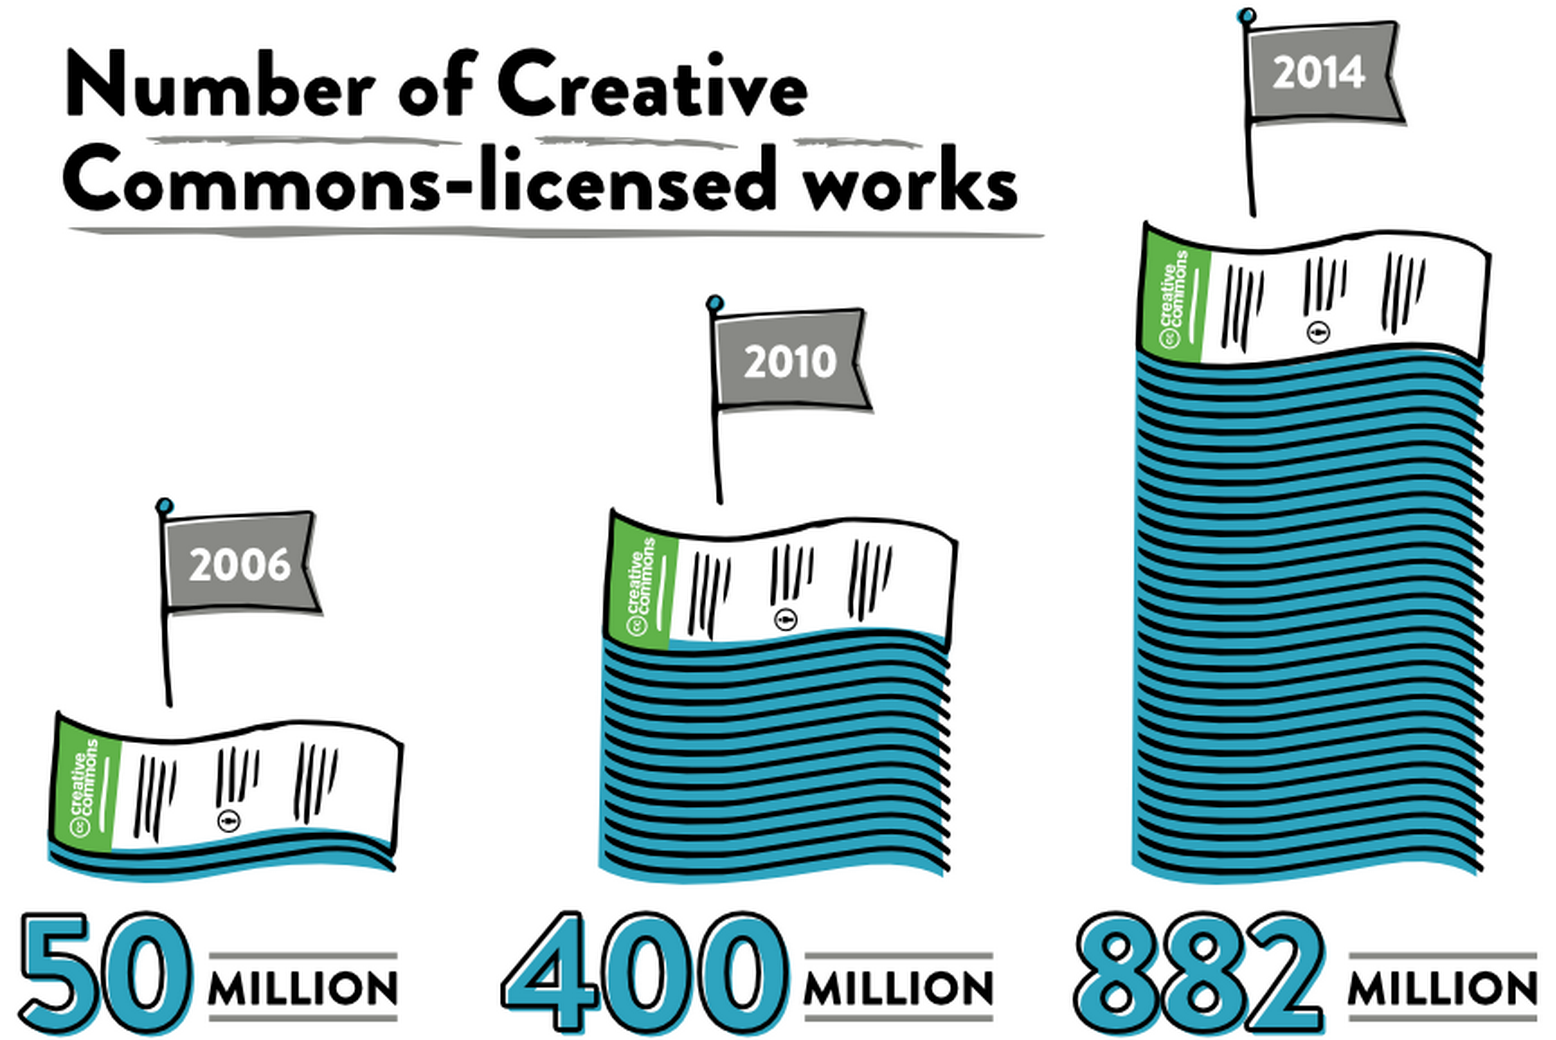 creative commons | Paul Stacey